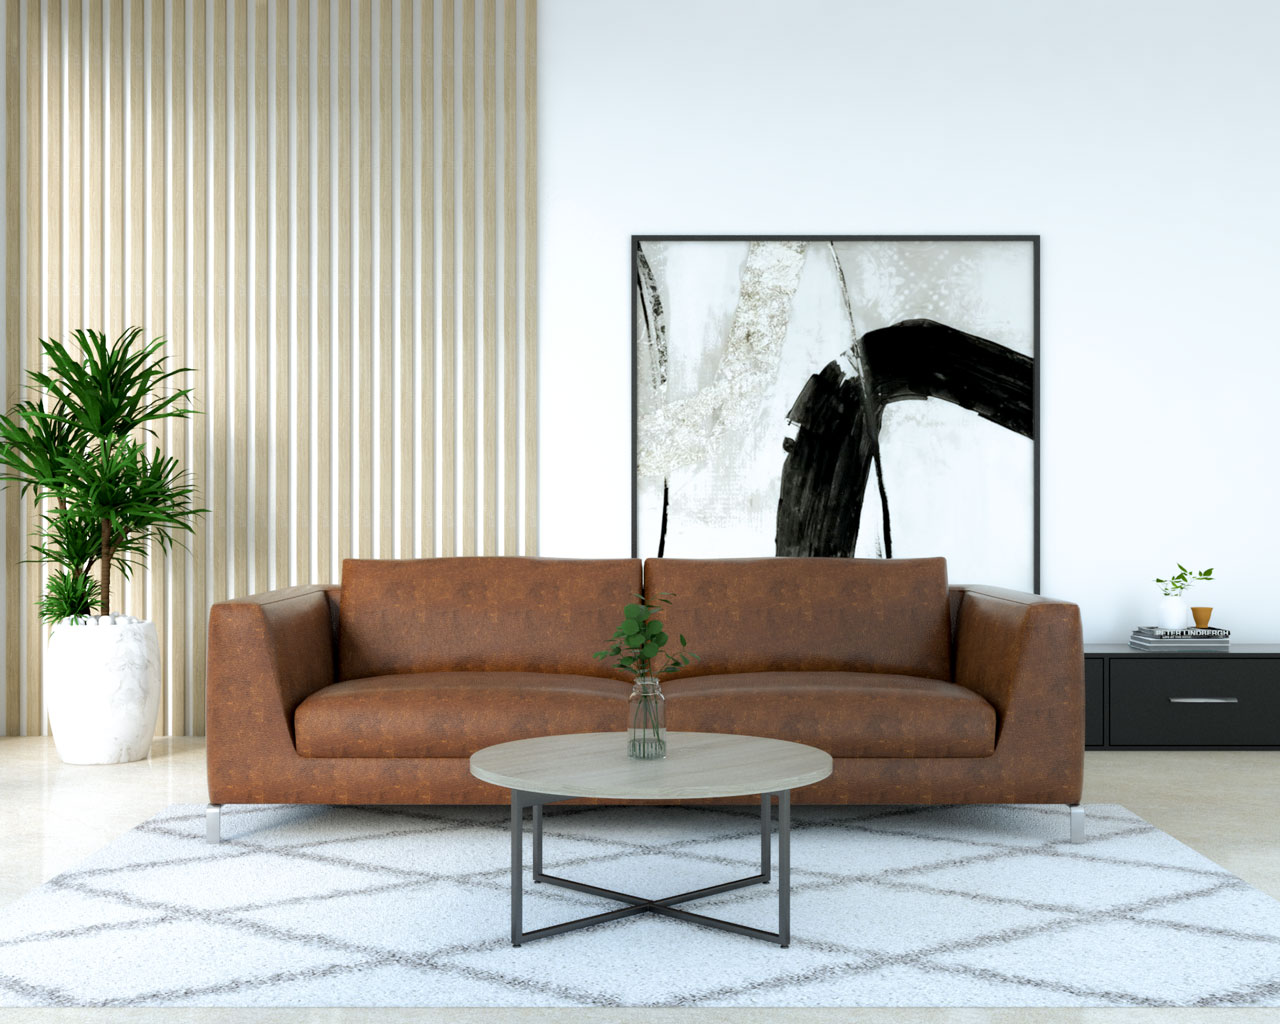 Wood top and metal frame table with brown couch